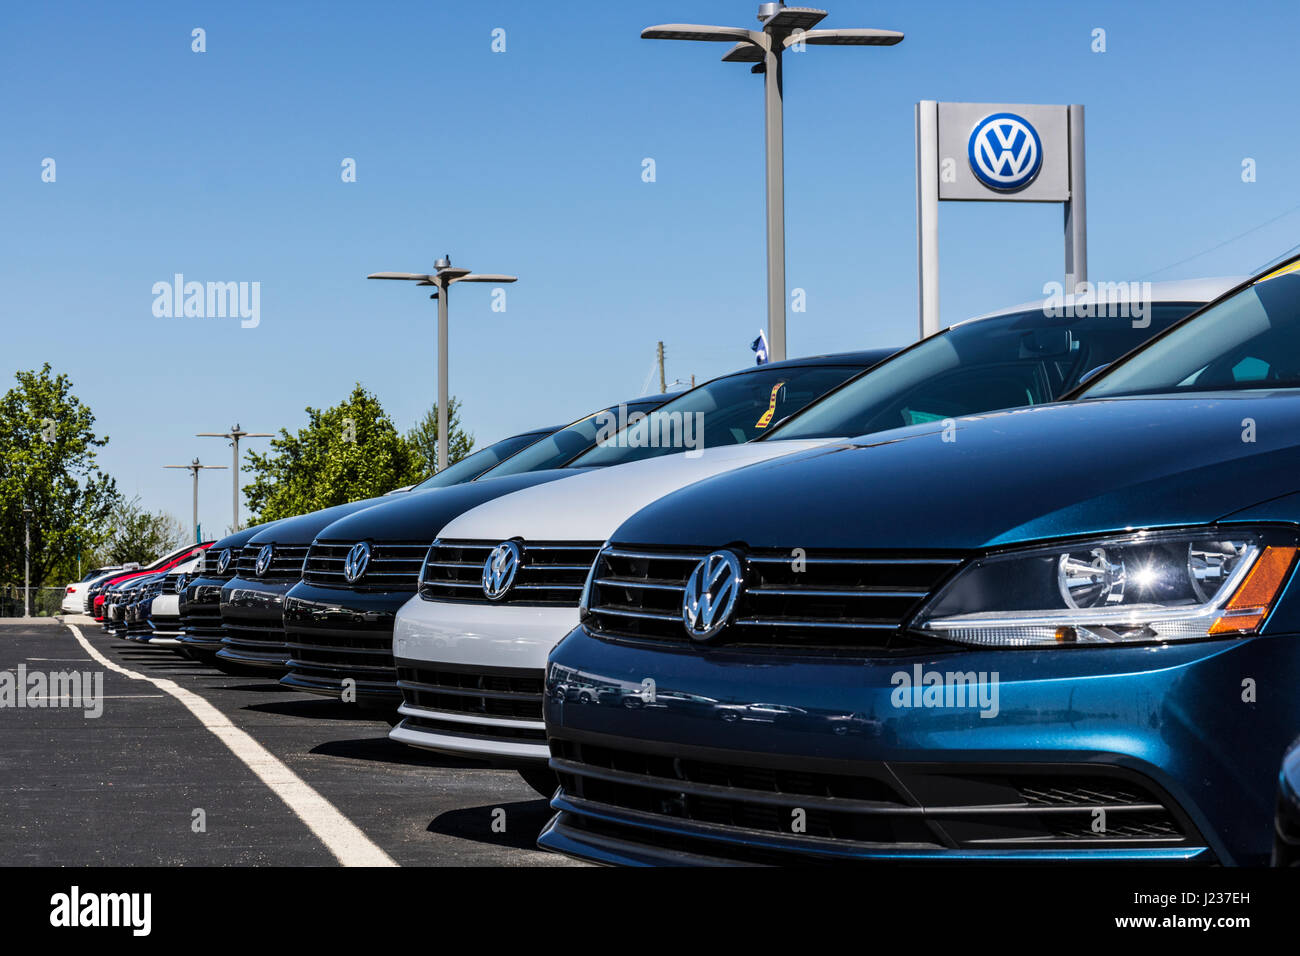 suv stock volkswagen indianapolis circa the among dealership is february depositphotos cars photo and vw